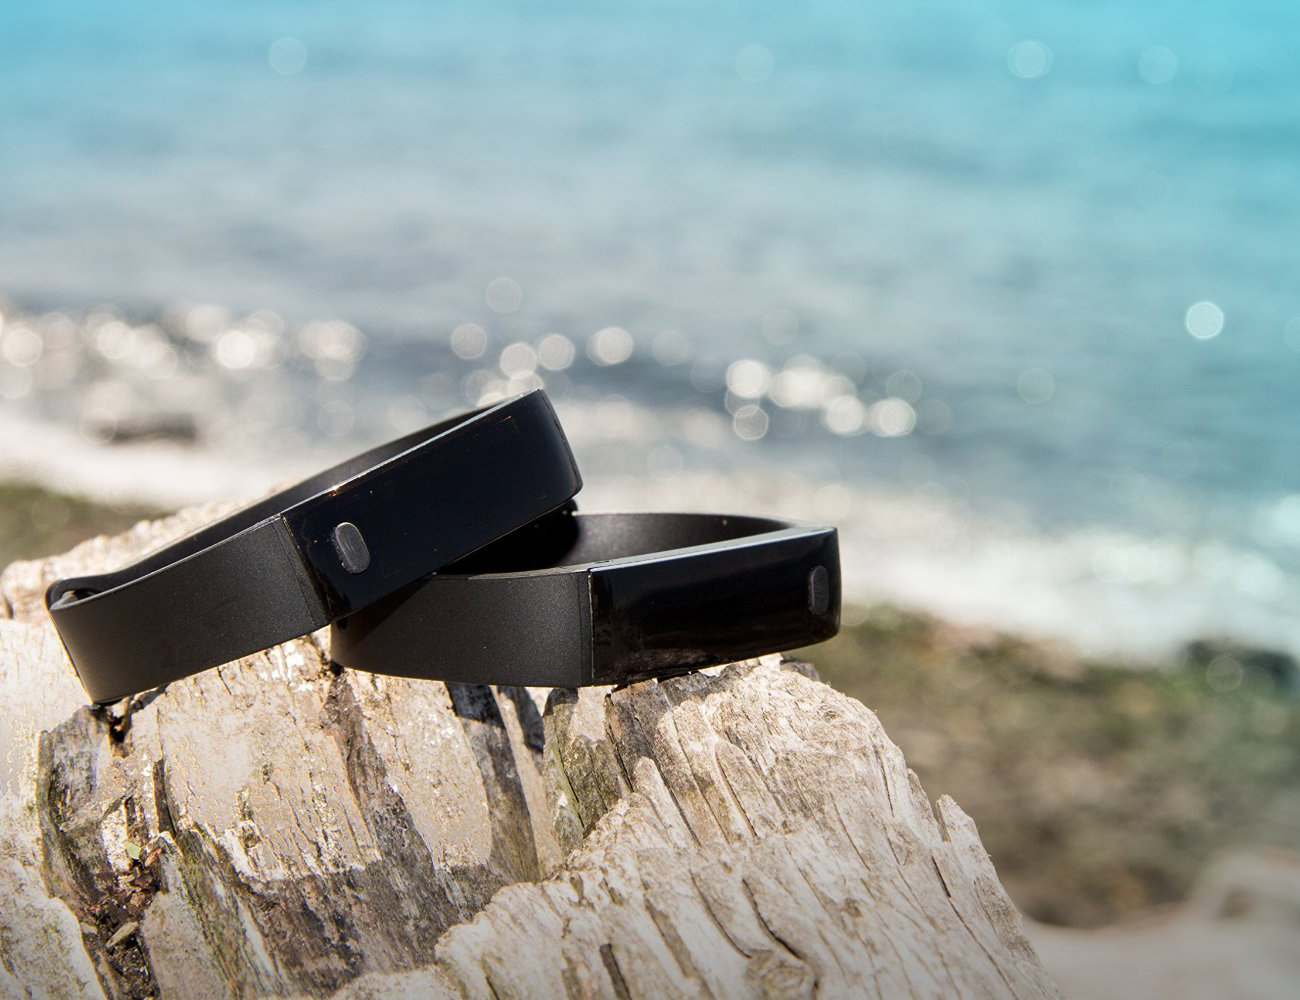 Pivotal Living Band – The Smart Activity & Sleep Tracker